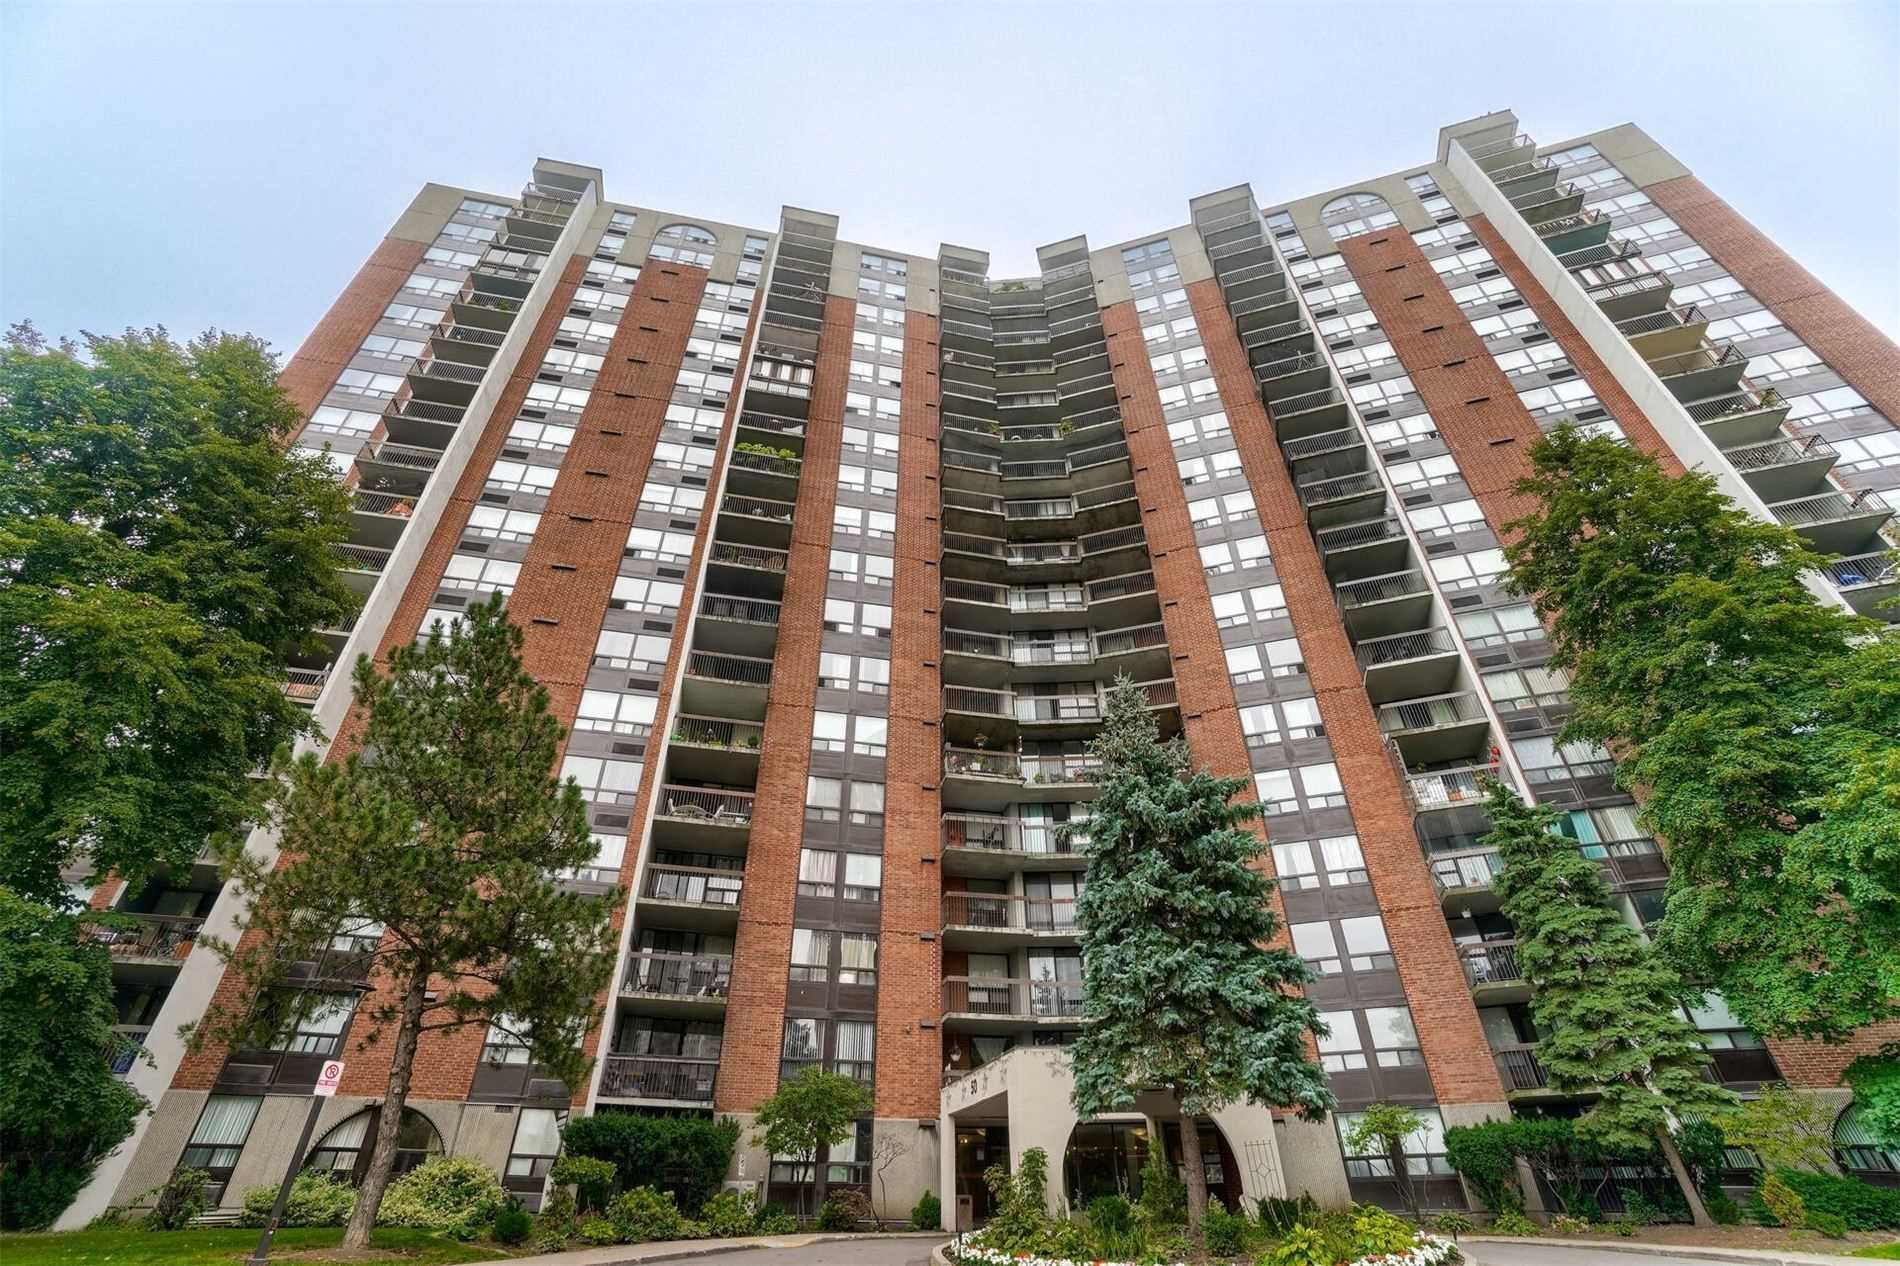 50 Mississauga Valley Blvd #517, Mississauga, ON L5A3S2 - MLS#: W5396628